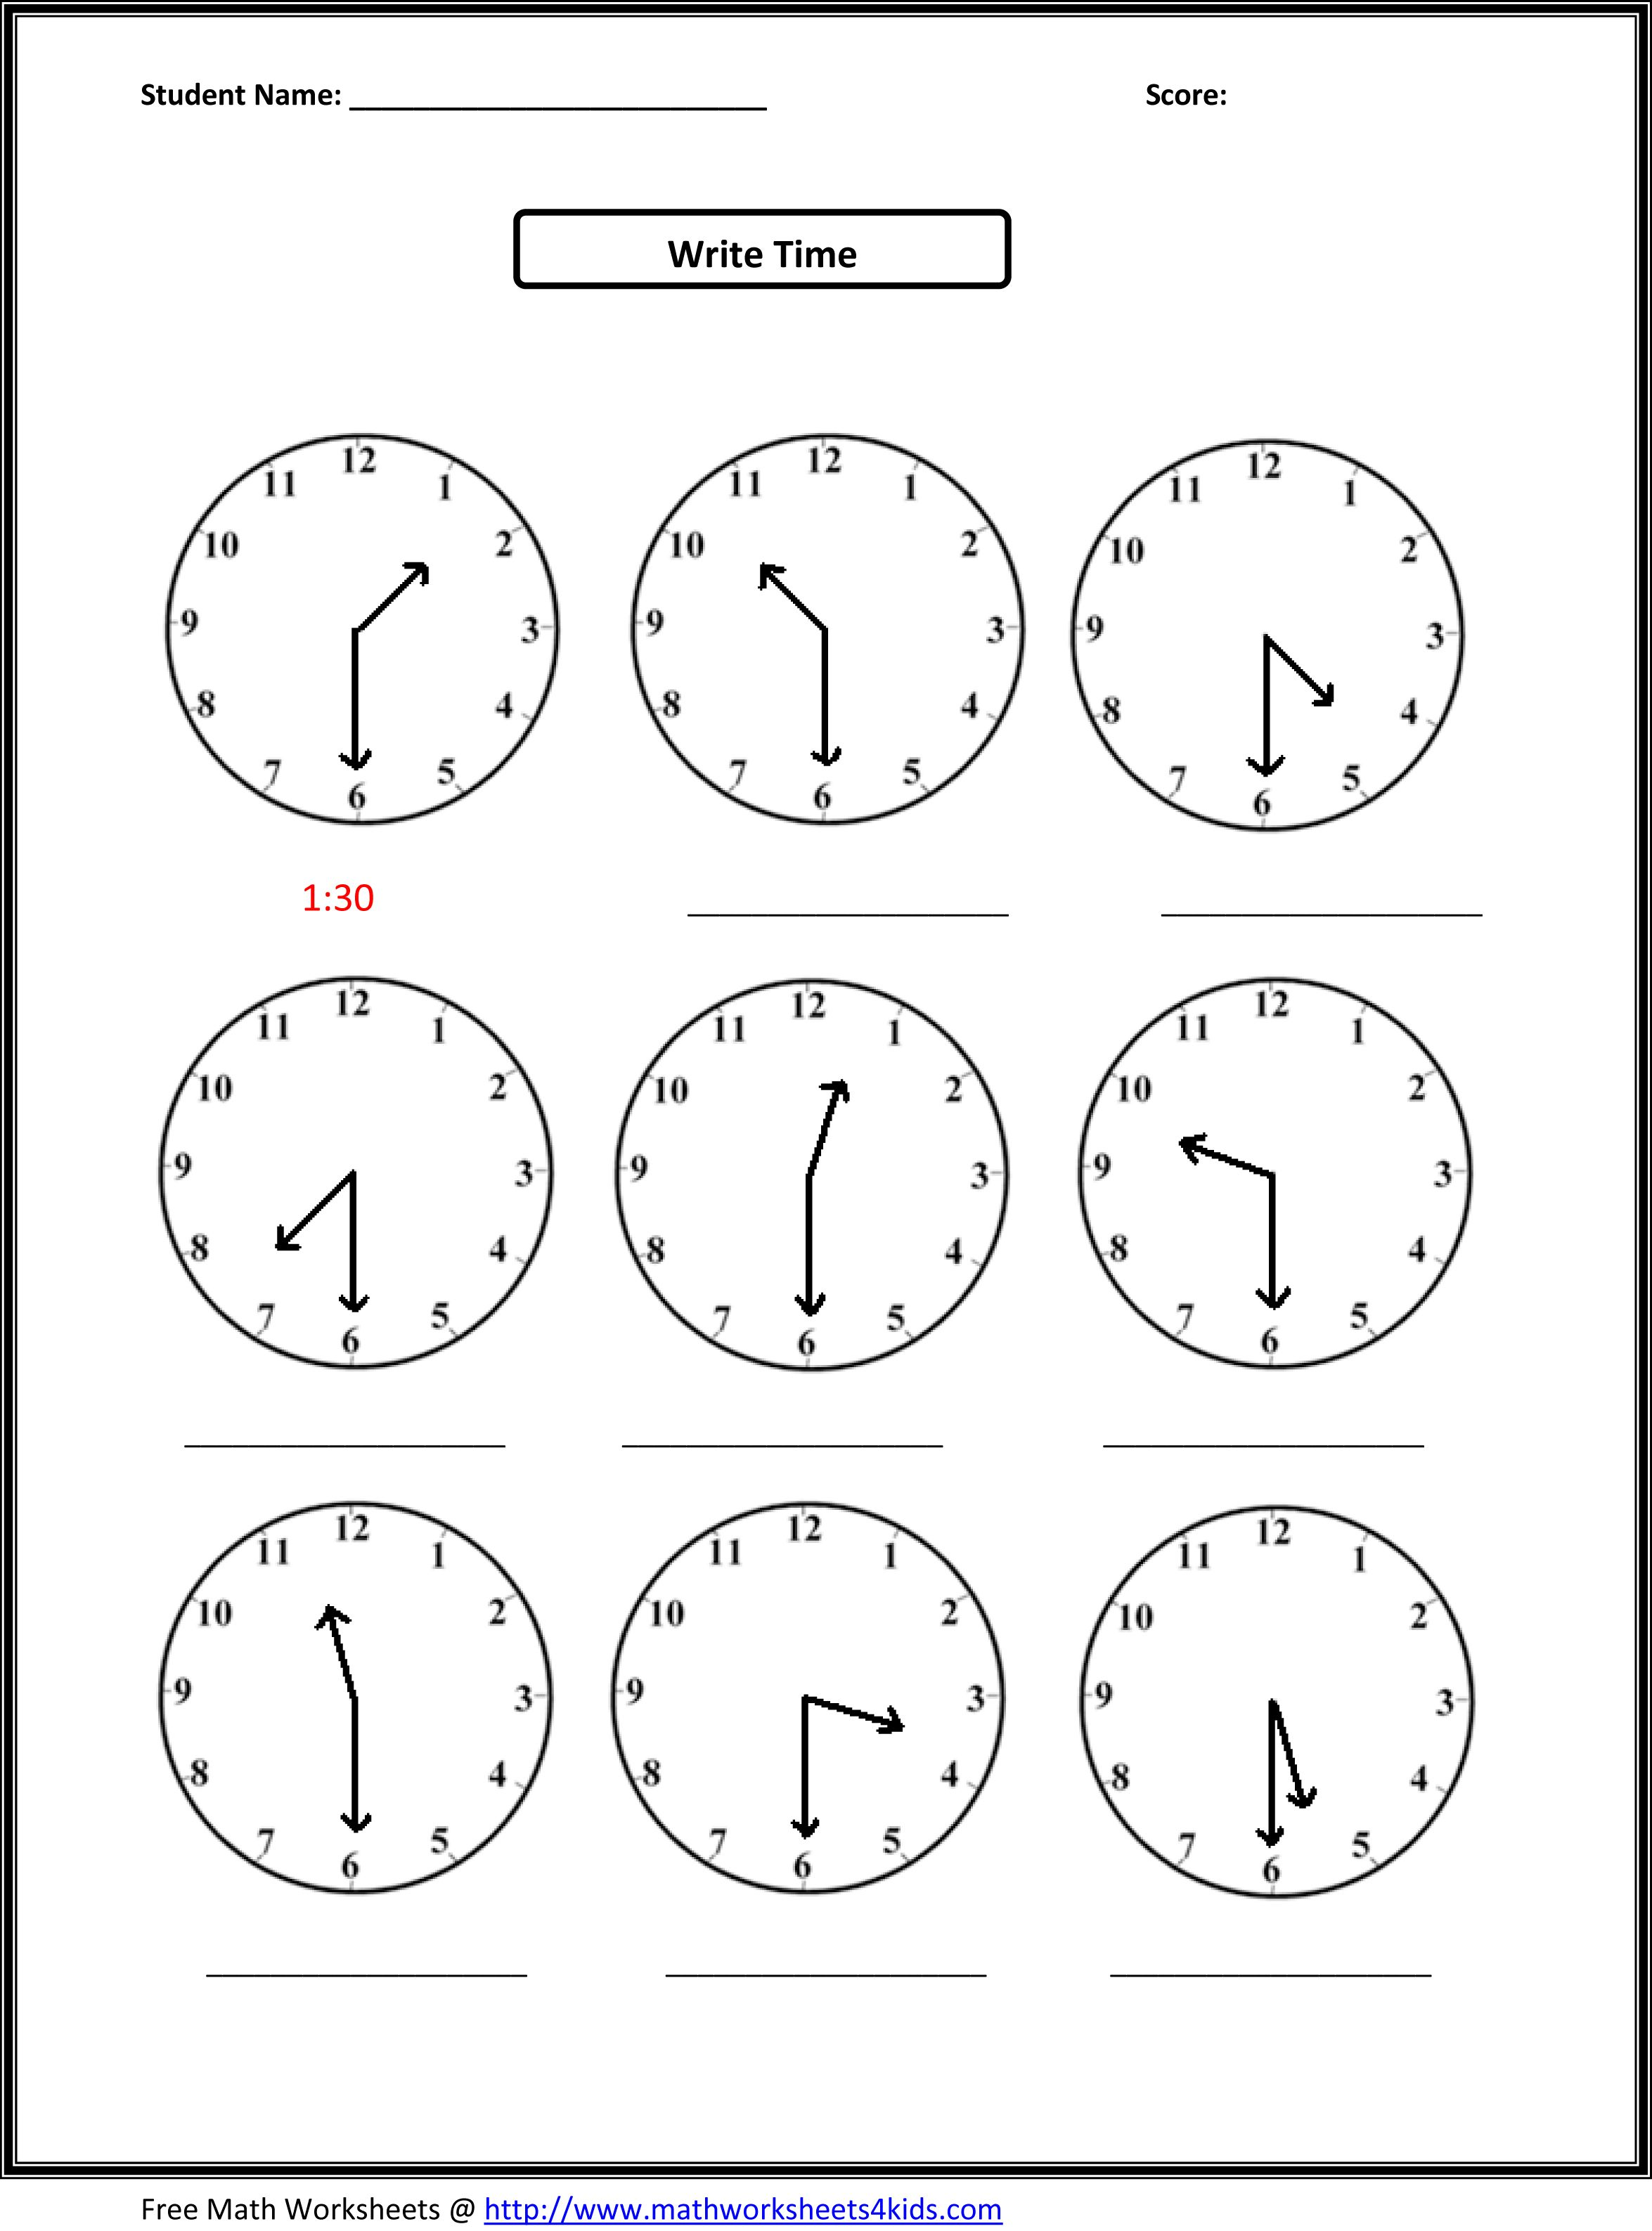 Proatmealus  Gorgeous Worksheet On Time For Grade   Reocurent With Lovable Free Printable Telling Time Worksheets Nd Grade  Reocurent With Charming Verb Tenses Worksheet Pdf Also Factoring Gcf Worksheet In Addition Geometry Worksheet Congruent Triangles And Teaching Transparency Worksheet Answers Chapter  As Well As Chemistry Review Worksheet Additionally Rd Grade Math Worksheets Pdf From Reocurentcom With Proatmealus  Lovable Worksheet On Time For Grade   Reocurent With Charming Free Printable Telling Time Worksheets Nd Grade  Reocurent And Gorgeous Verb Tenses Worksheet Pdf Also Factoring Gcf Worksheet In Addition Geometry Worksheet Congruent Triangles From Reocurentcom